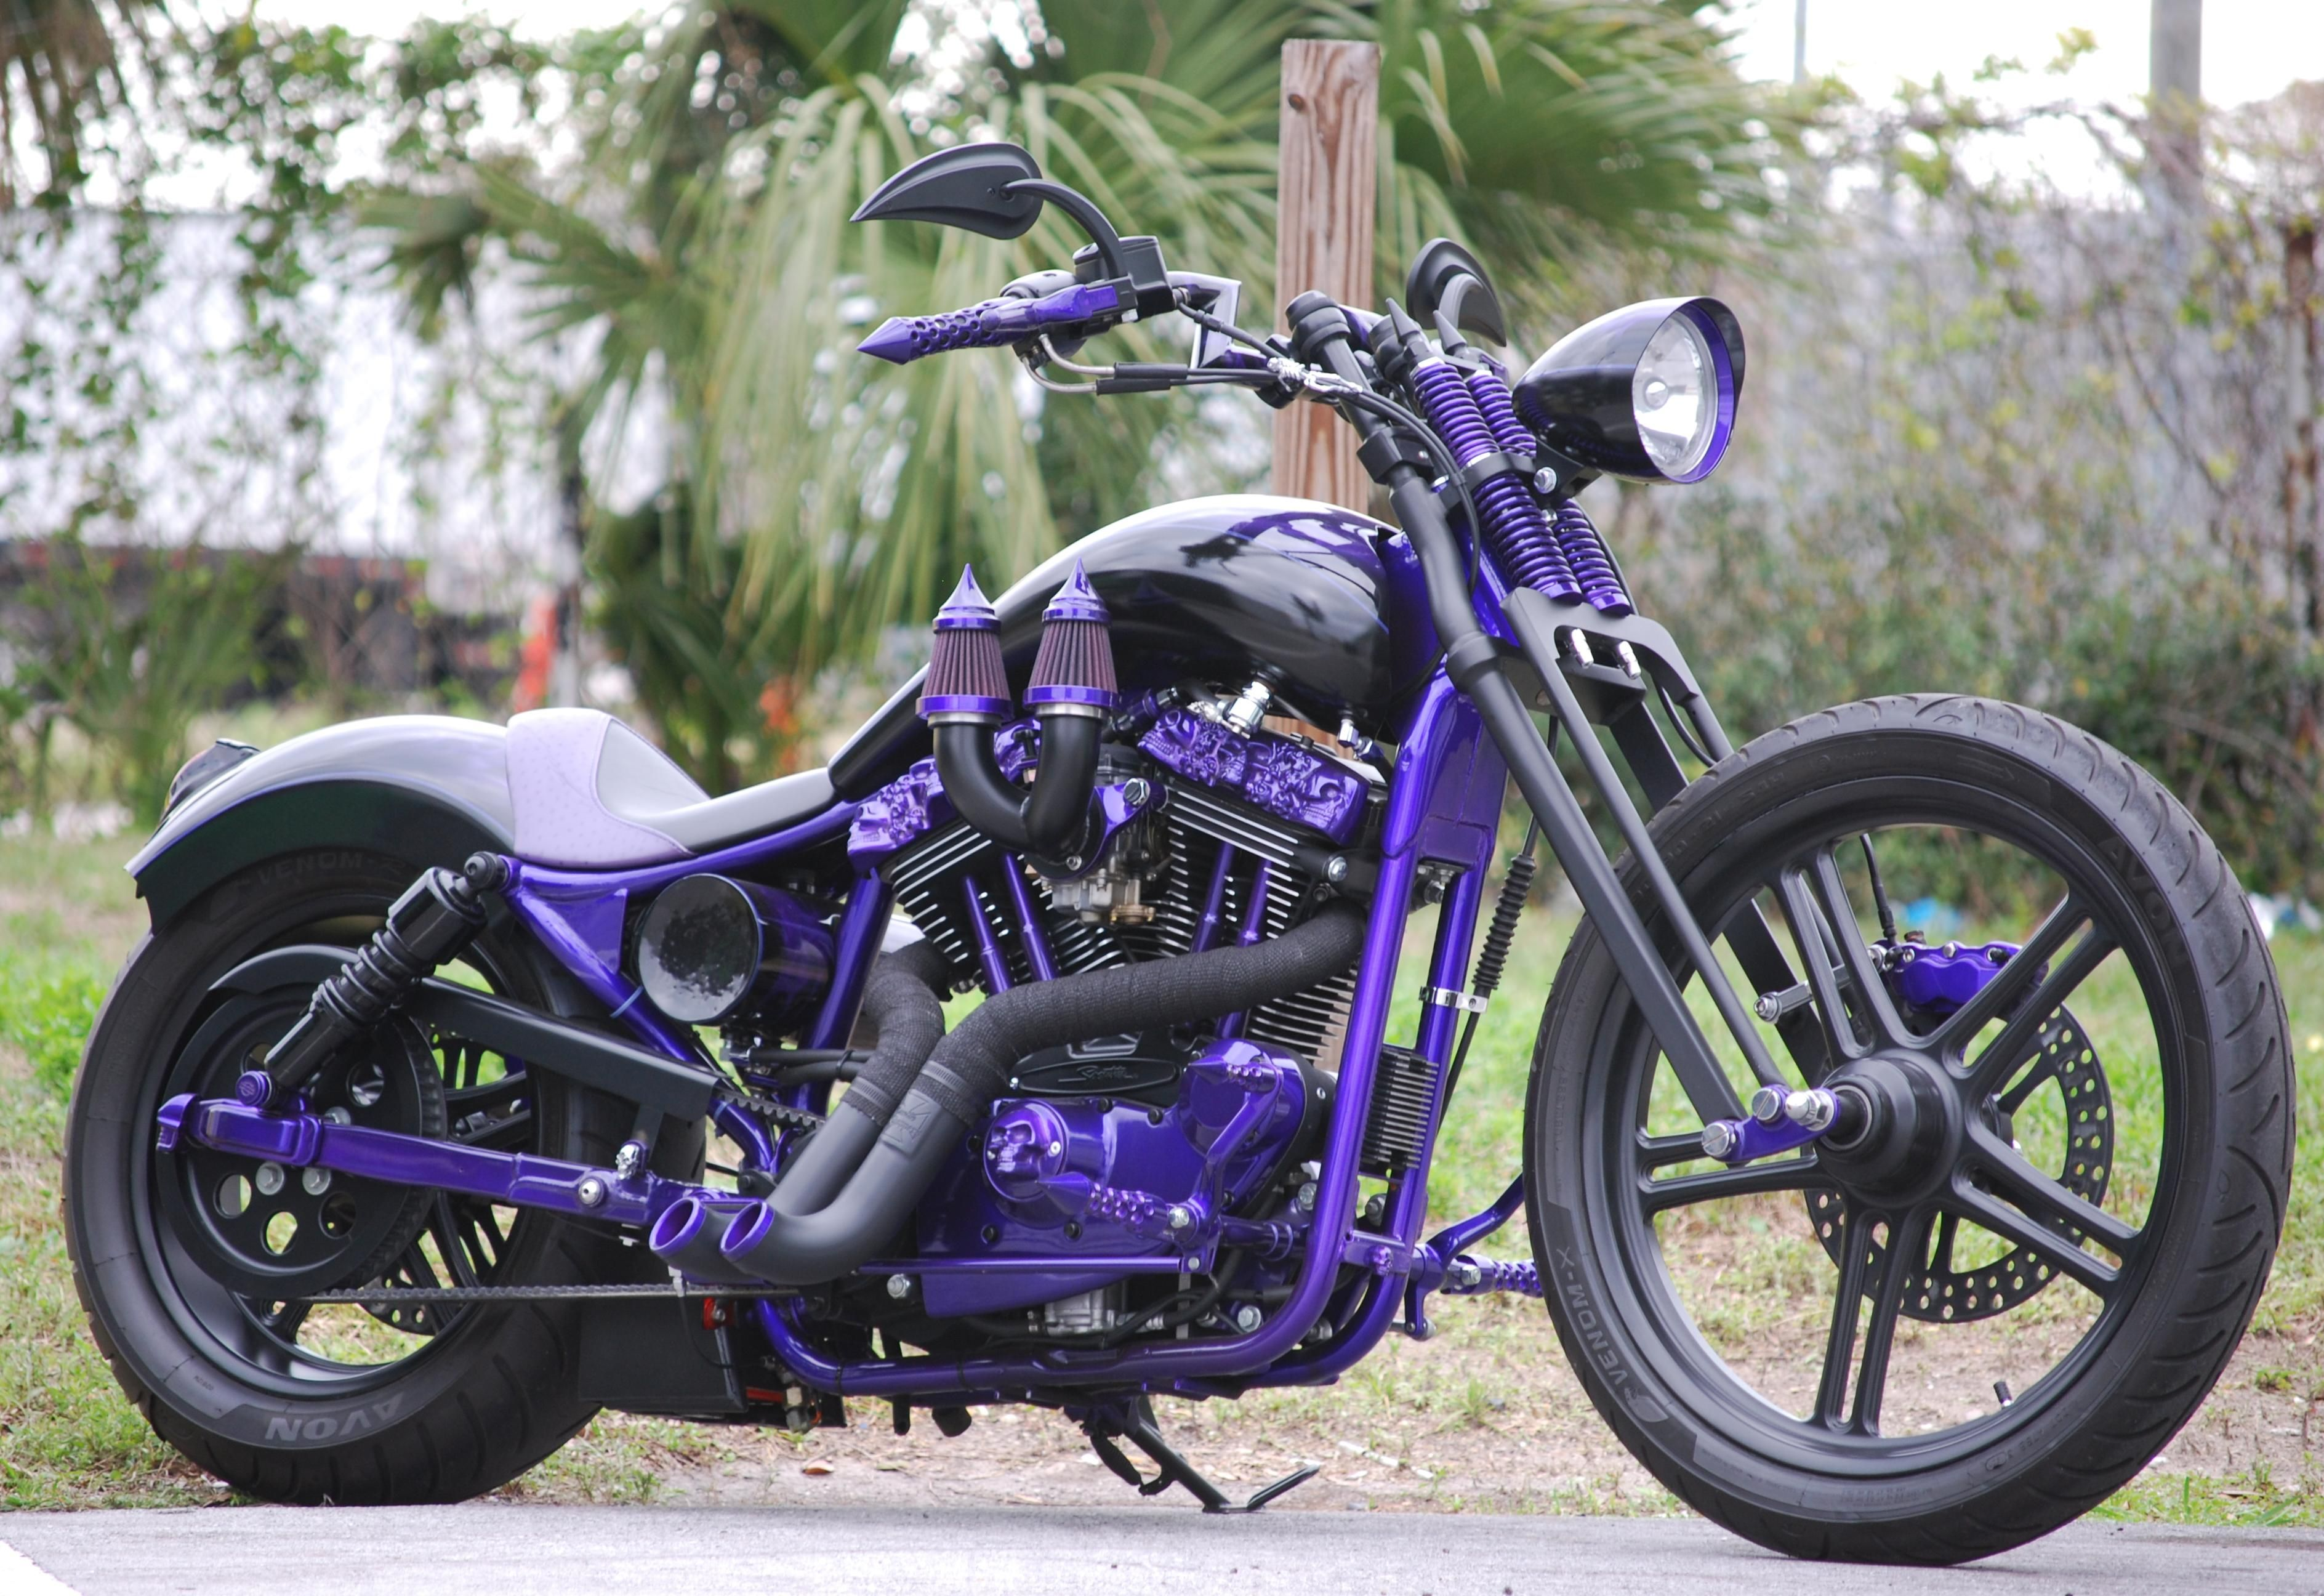 exotic choppers | Fire on two wheels | Pinterest